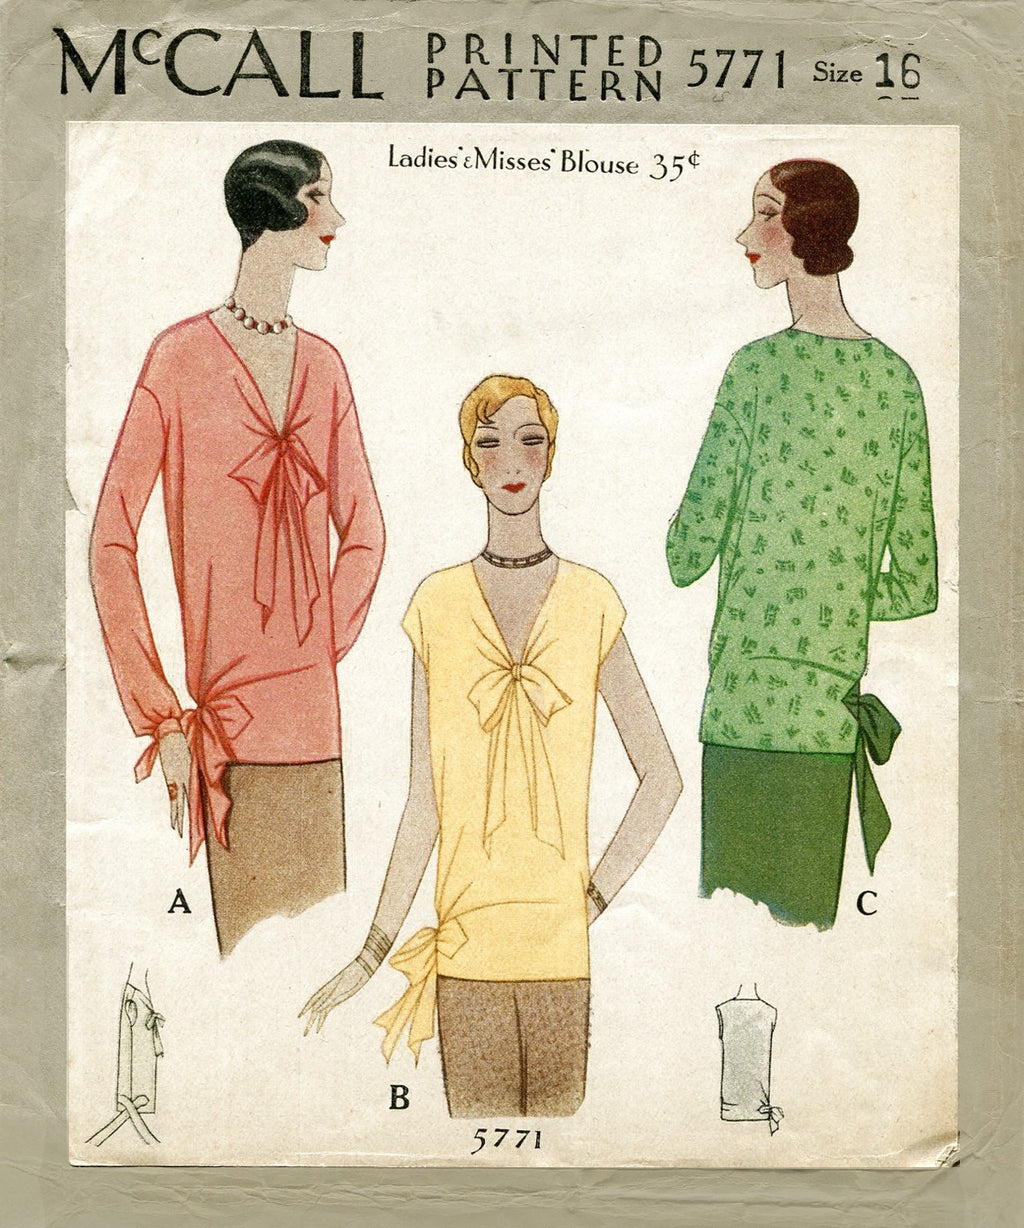 McCall 5771 1920s blouse sewing pattern